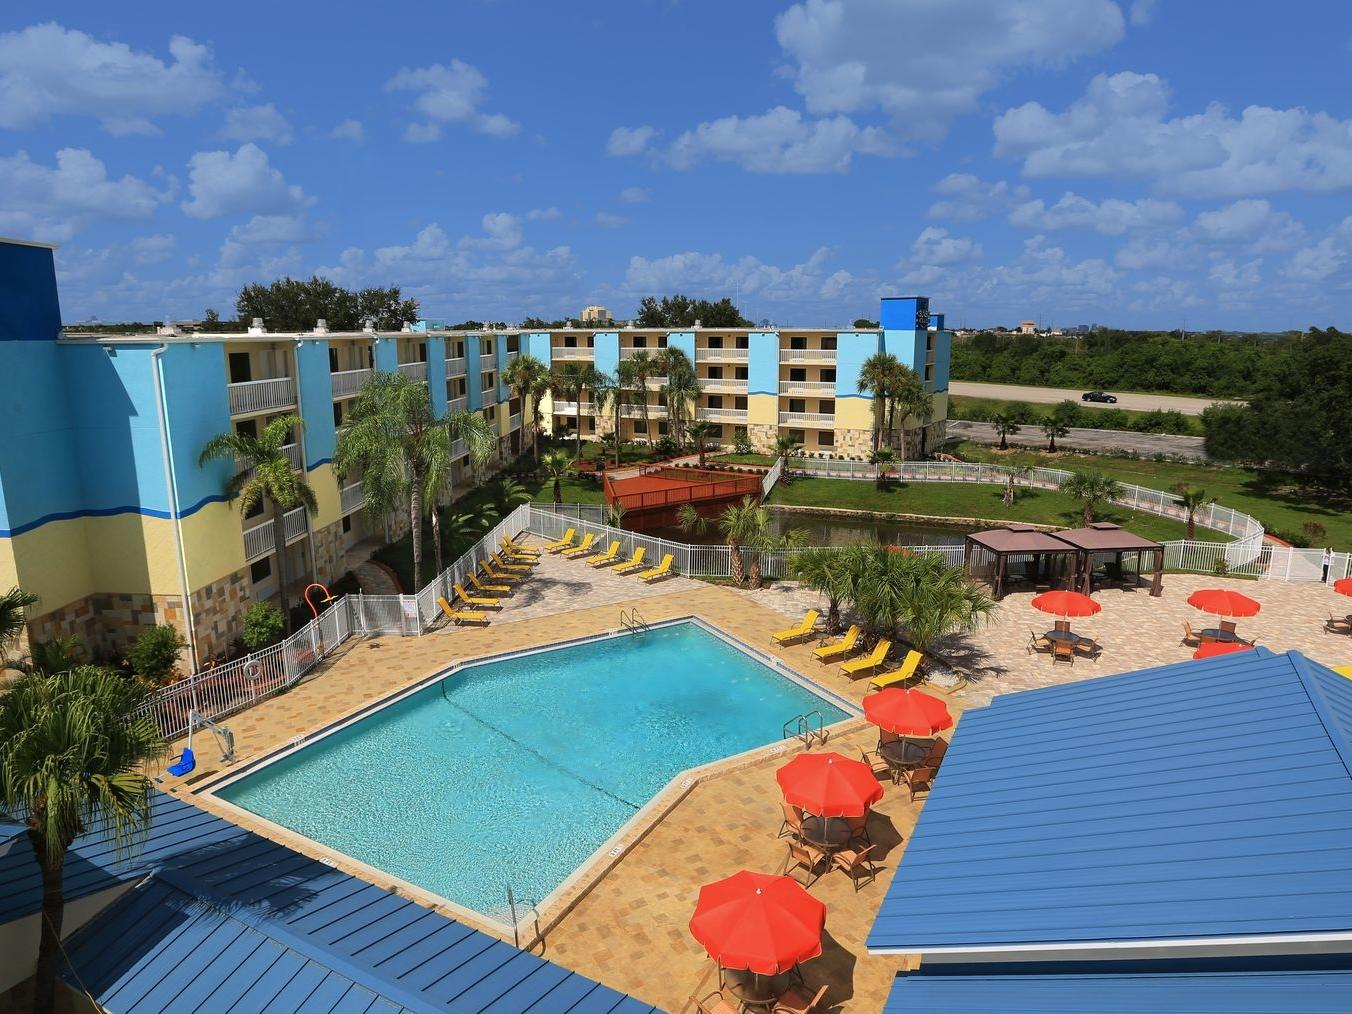 aerial view of resort and pool